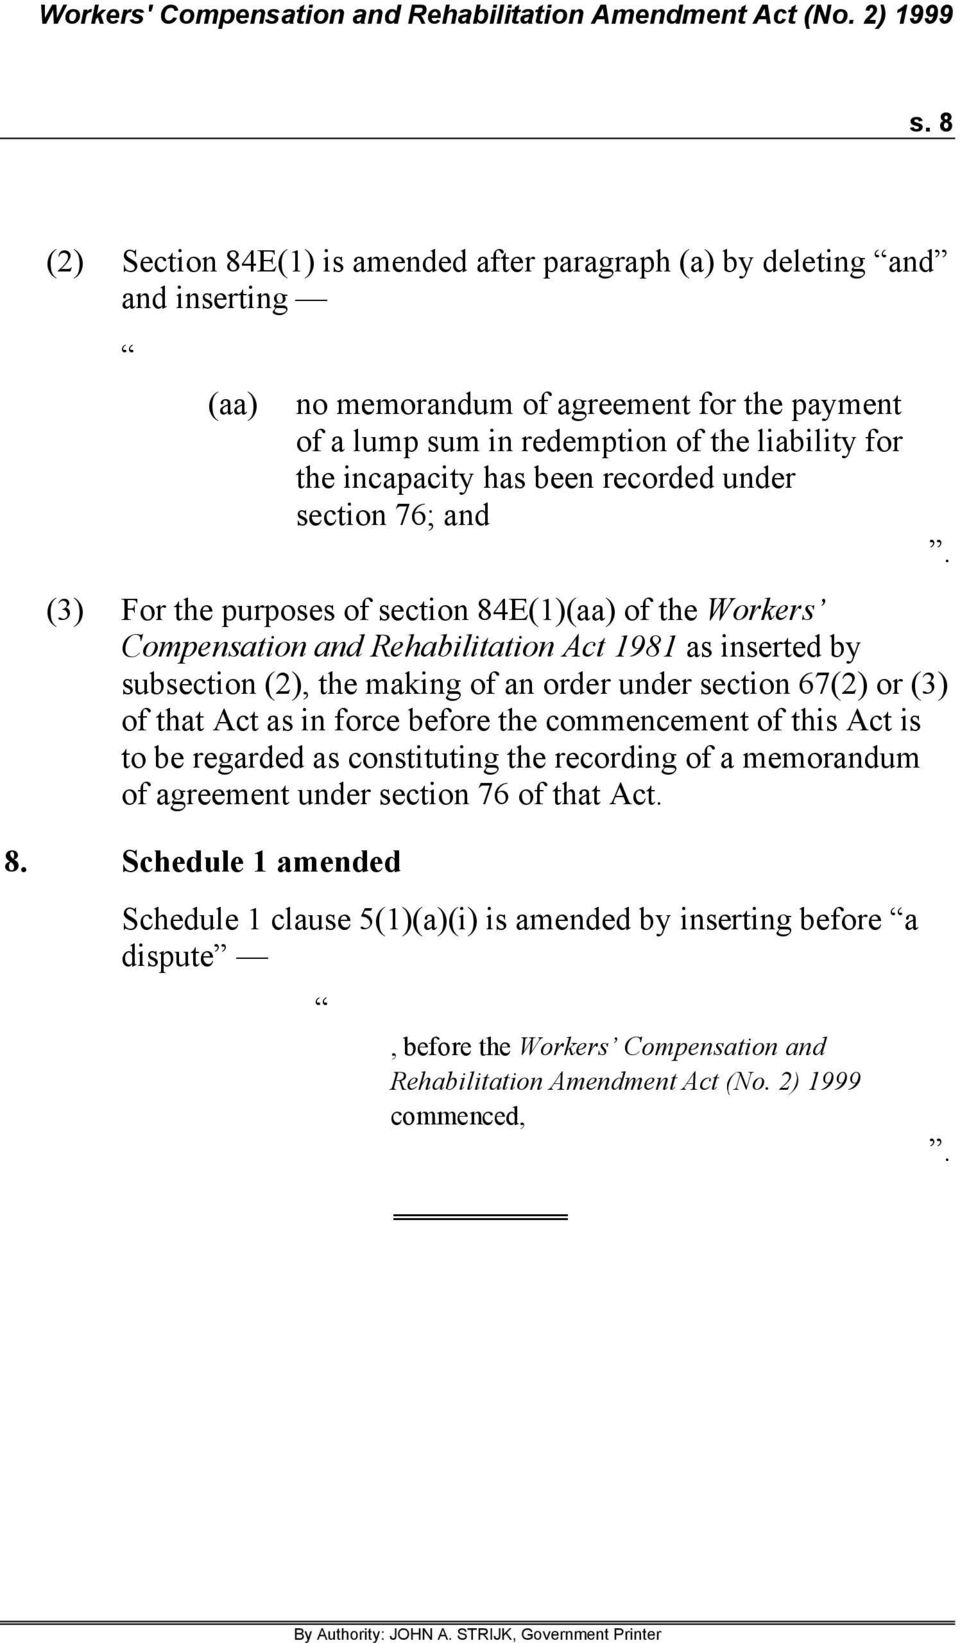 section 67(2) or (3) of that Act as in force before the commencement of this Act is to be regarded as constituting the recording of a memorandum of agreement under section 76 of that Act. 8.